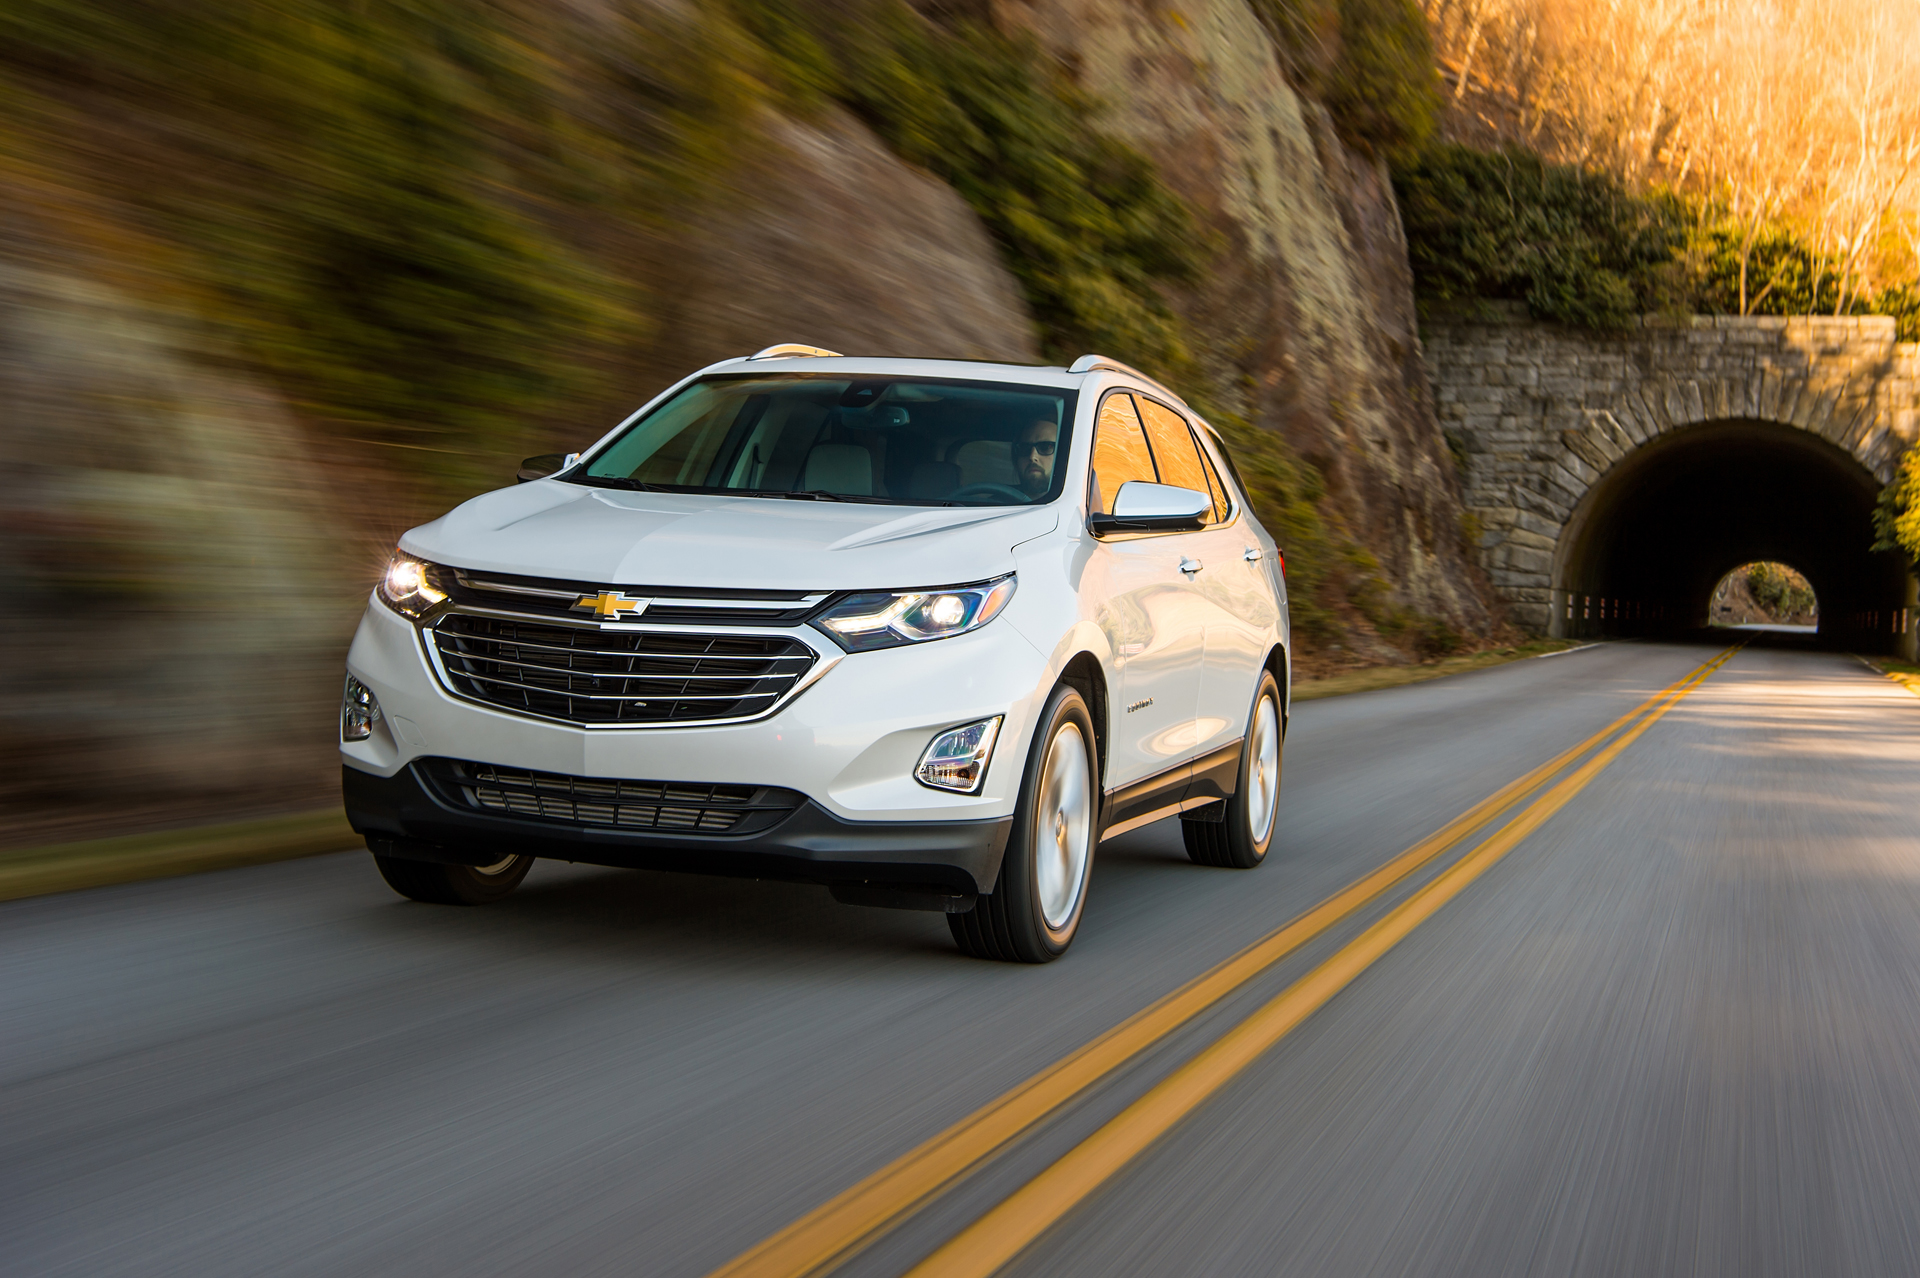 2018 chevrolet equinox chevy performance review the car connection. Black Bedroom Furniture Sets. Home Design Ideas